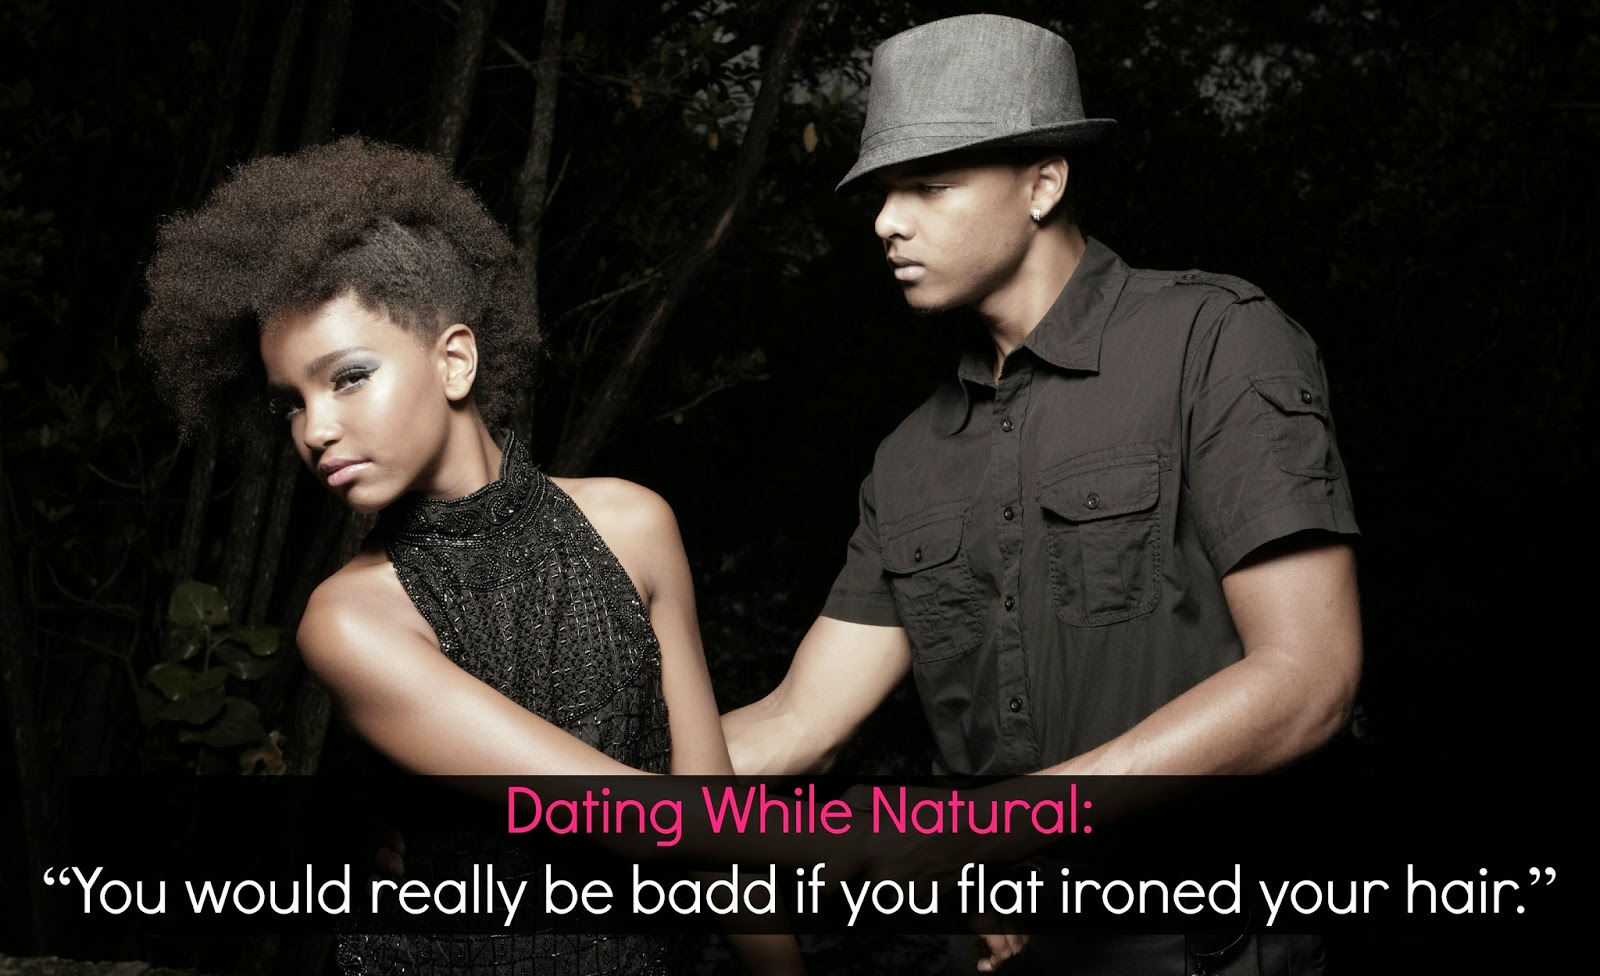 "Dating While Natural: ""You would really be badd if you flat ironed your hair."""